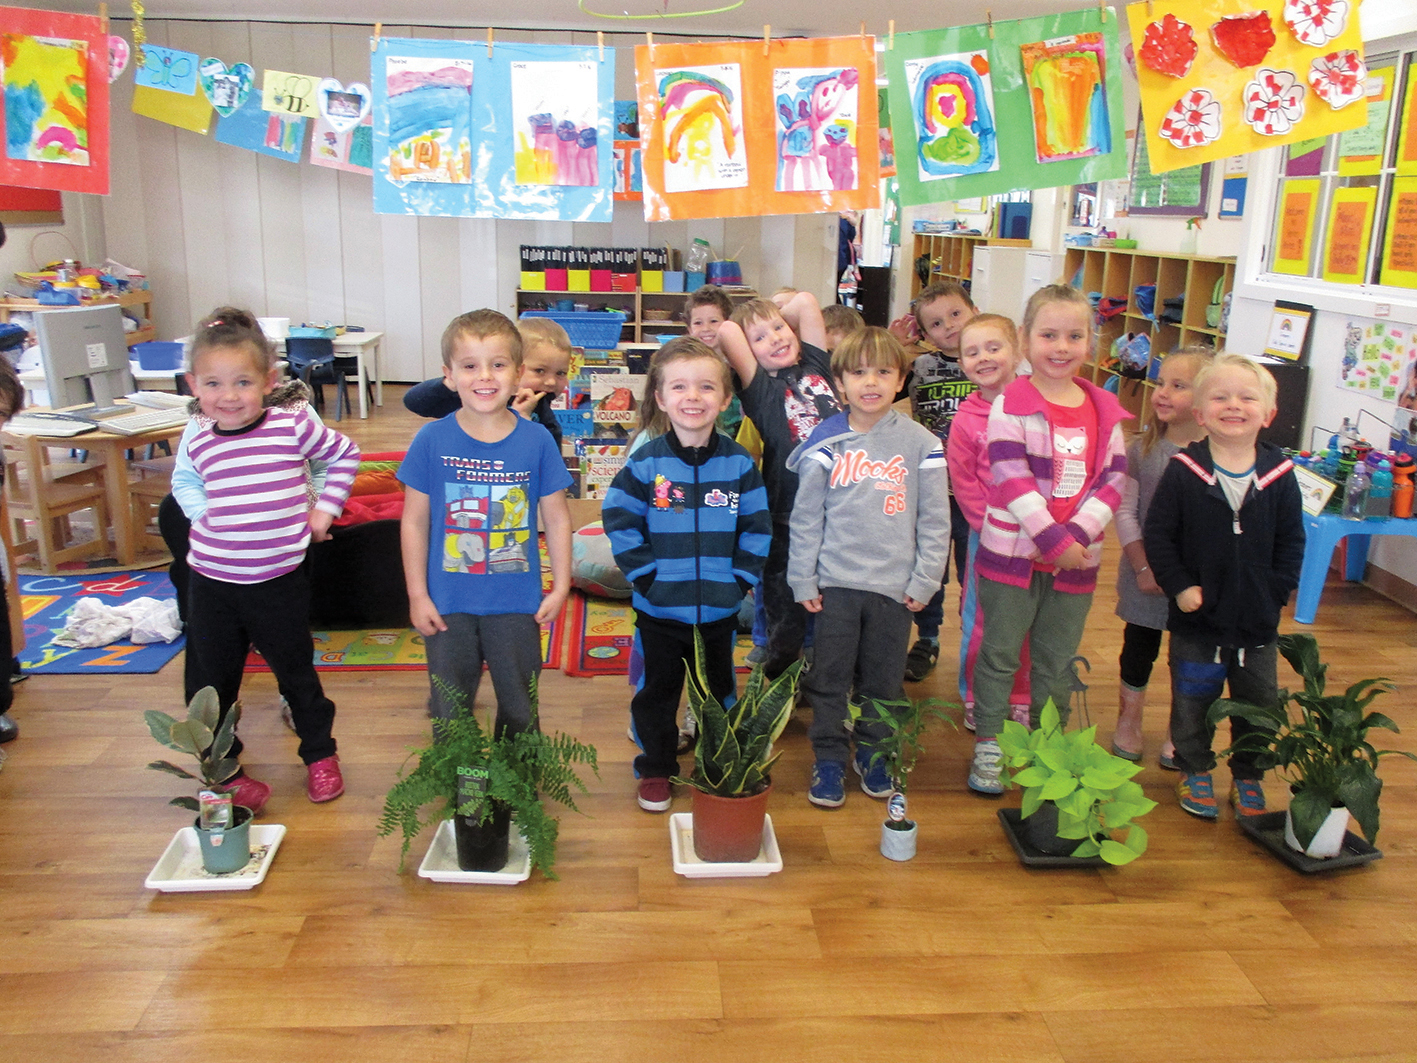 Improving air quality with indoor plants at the Honey Tree Preschool